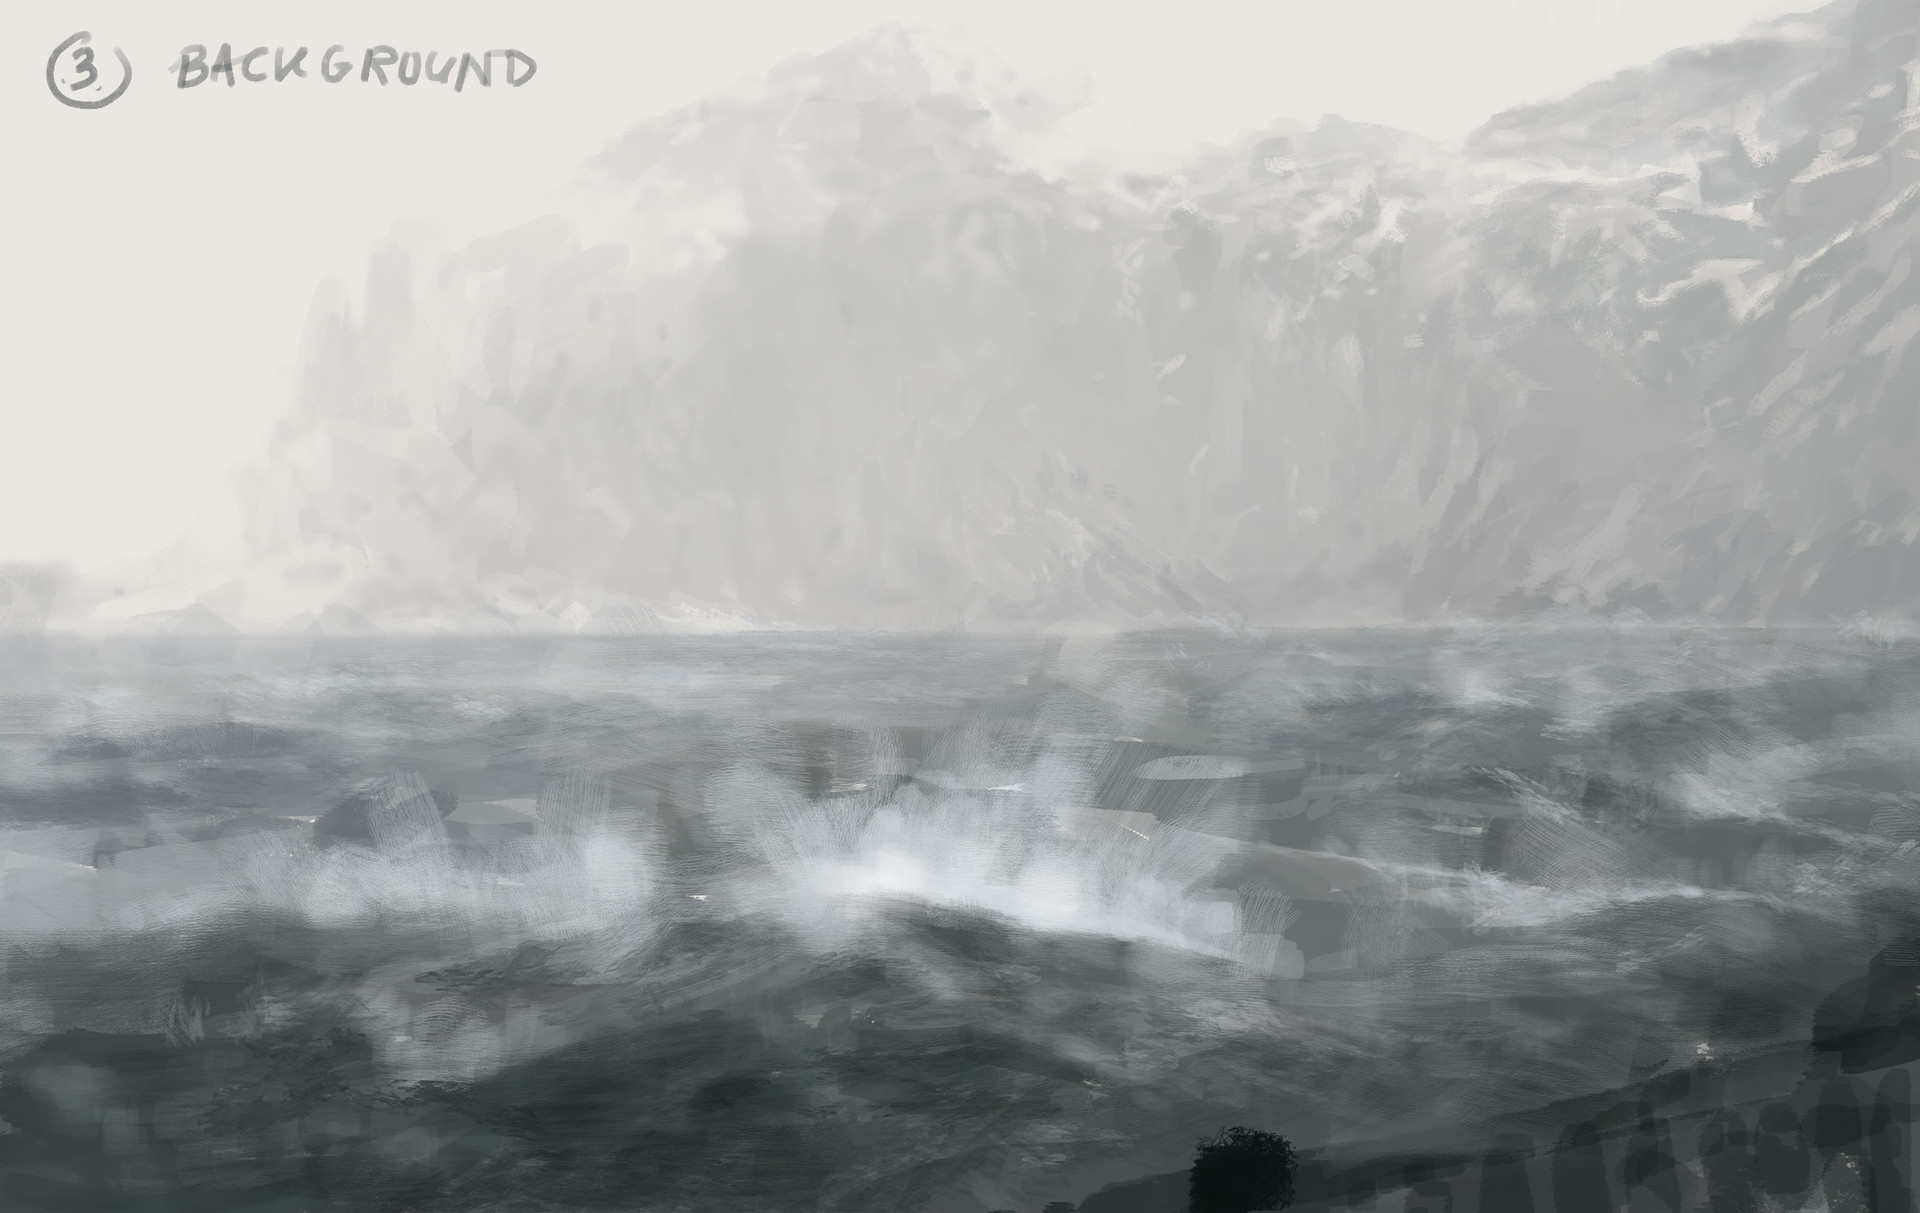 Jakub rozalski ancients 03workprocess3